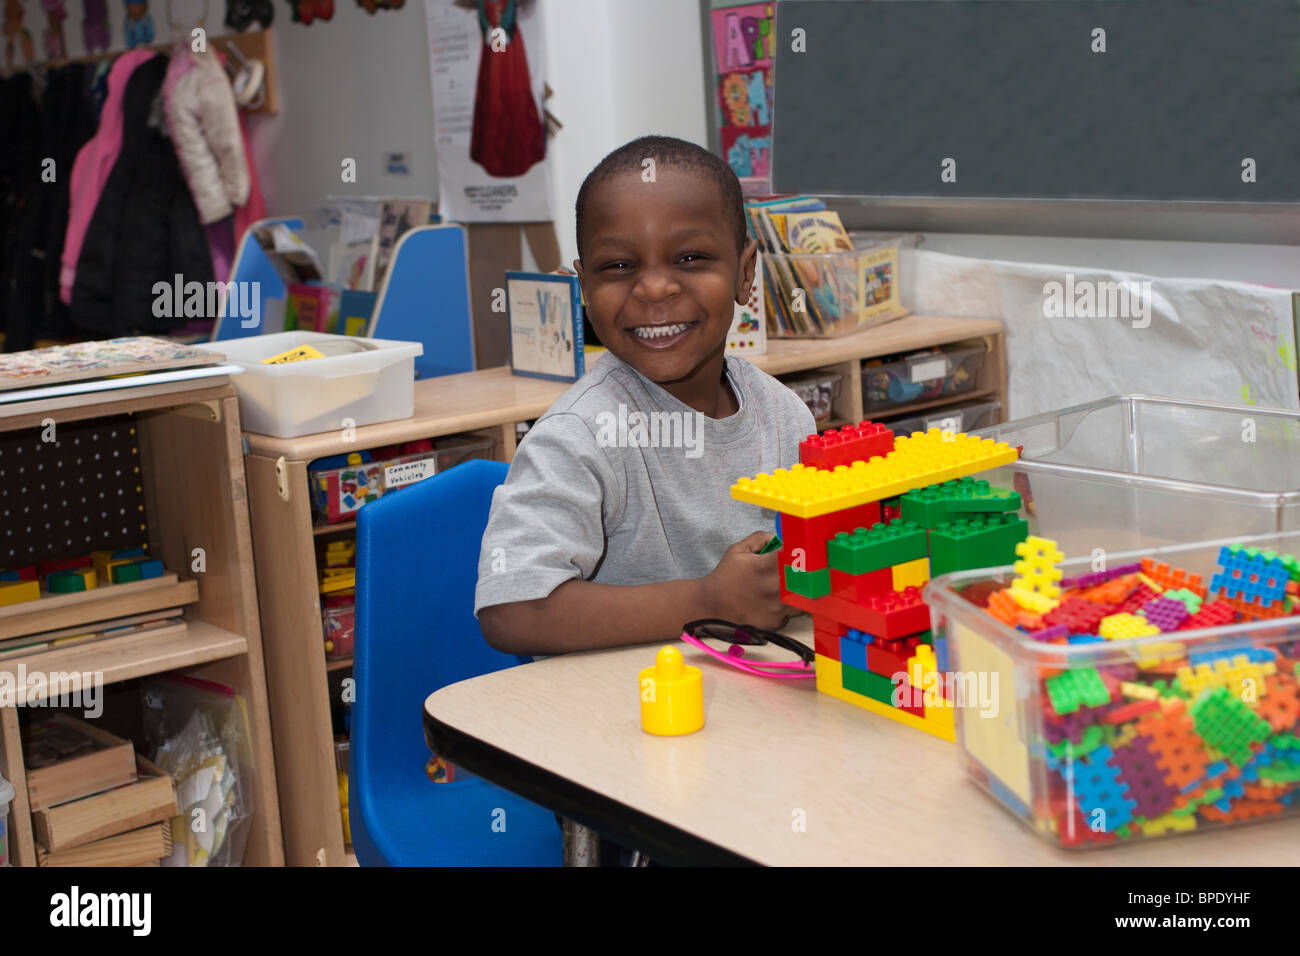 Kinder Garden: African American Preschool Boy Playing With Lego S In The